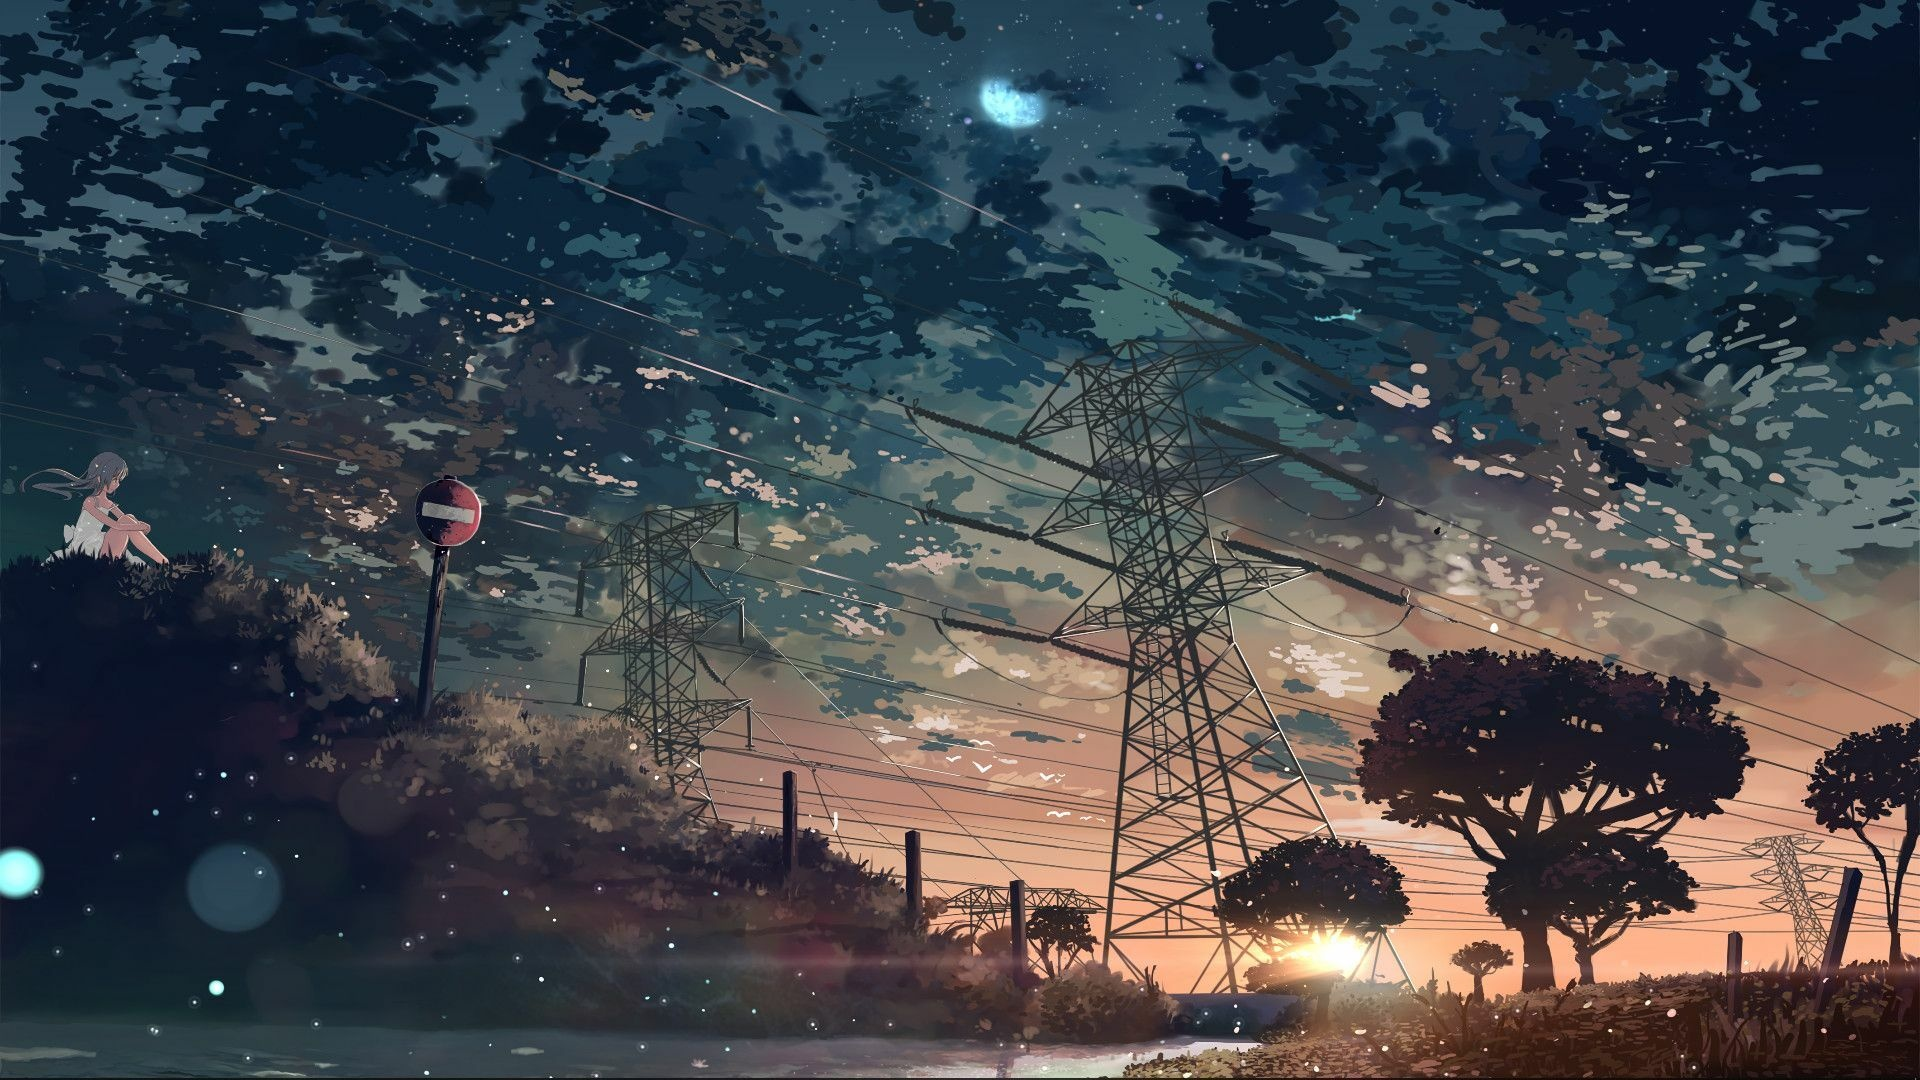 Anime Landscape With Clouds free wallpaper